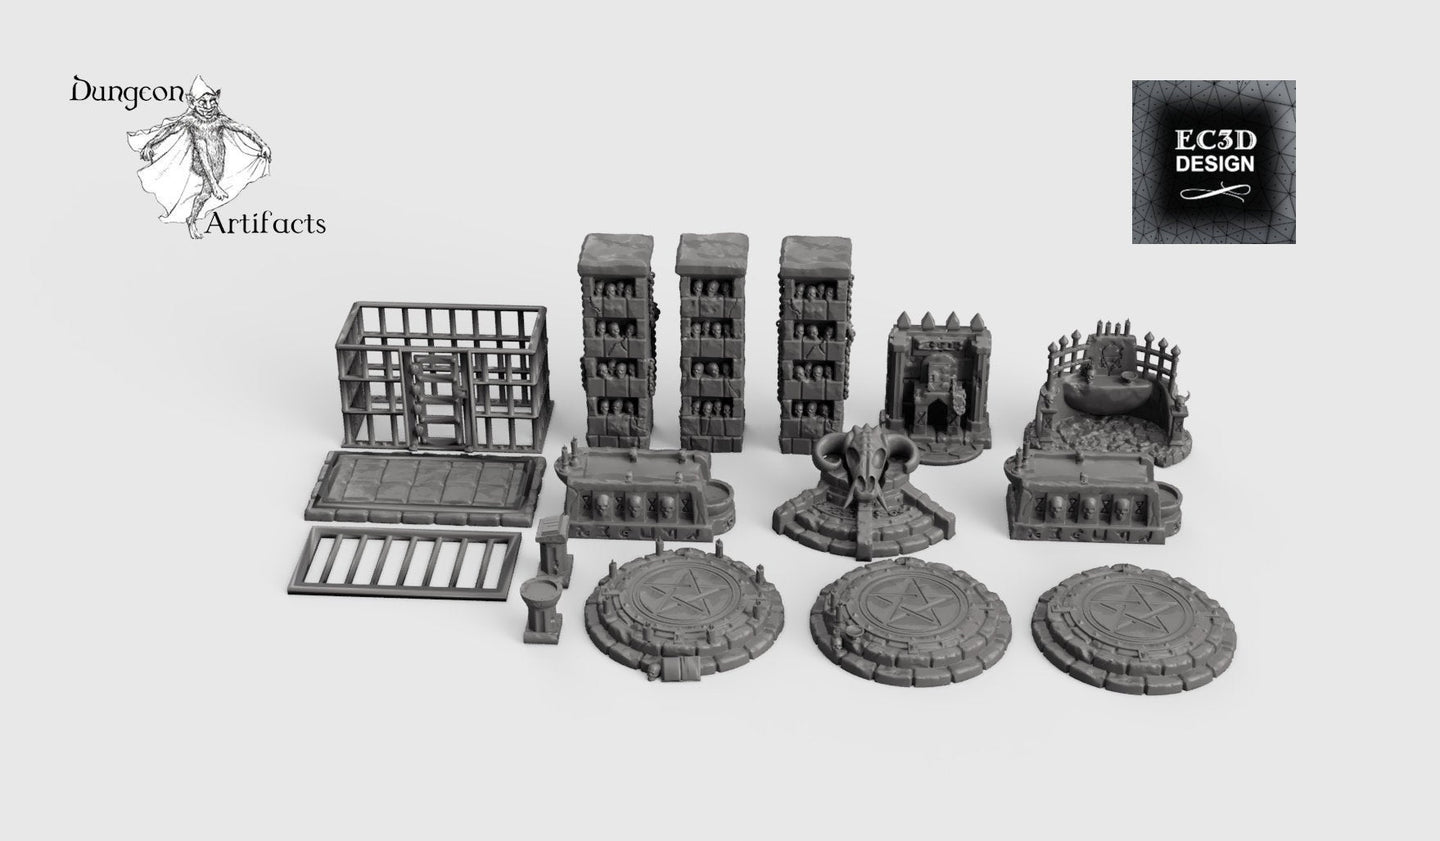 Occult and Evil Set - 28mm 32mm Hero's Hoard Wargaming Terrain D&D, DnD, Pathfinder, SW Legion, Warhammer